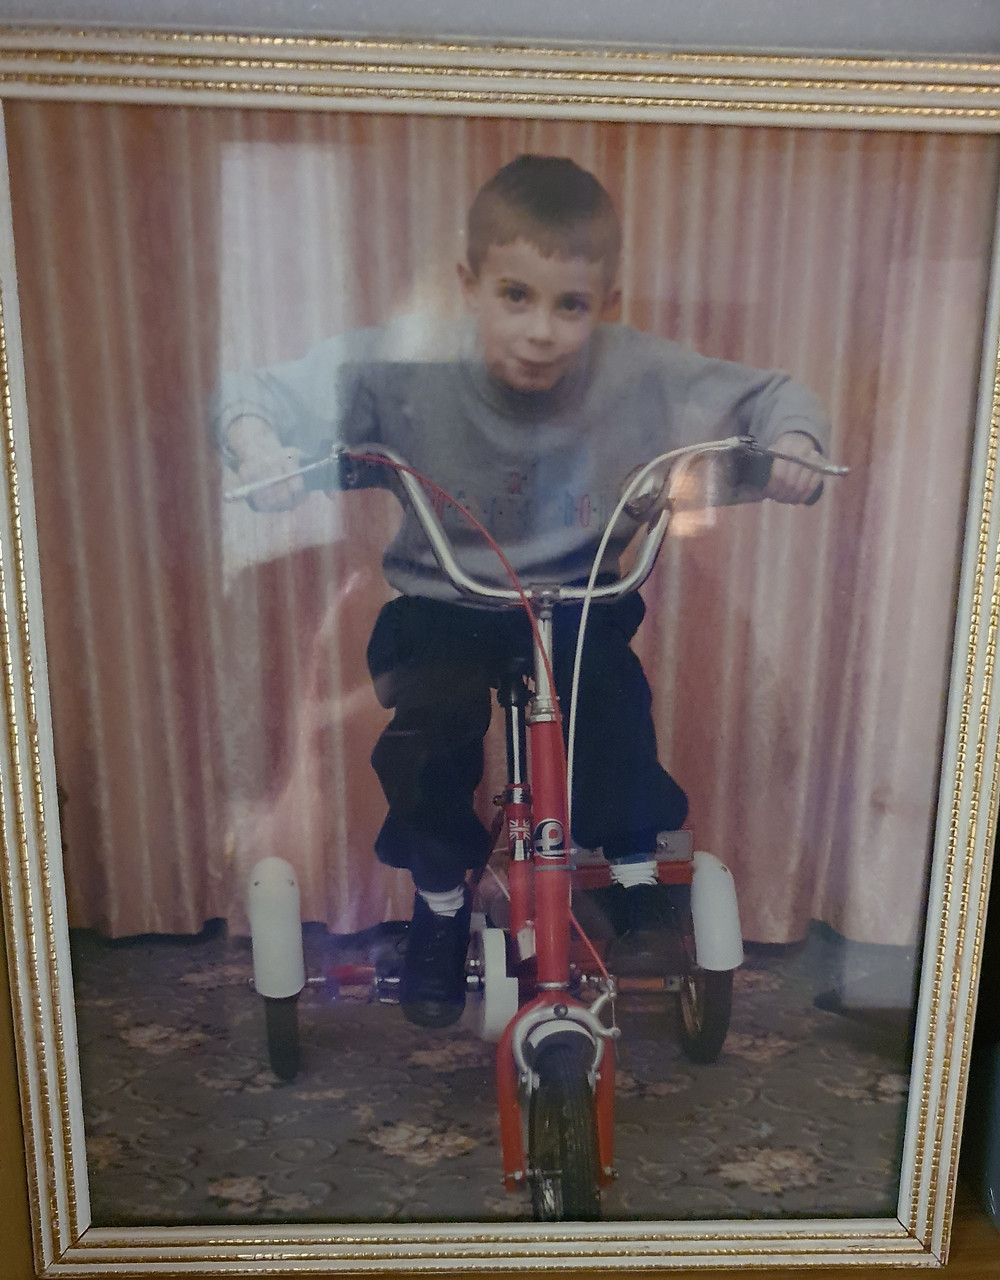 photo of me on a tricycle